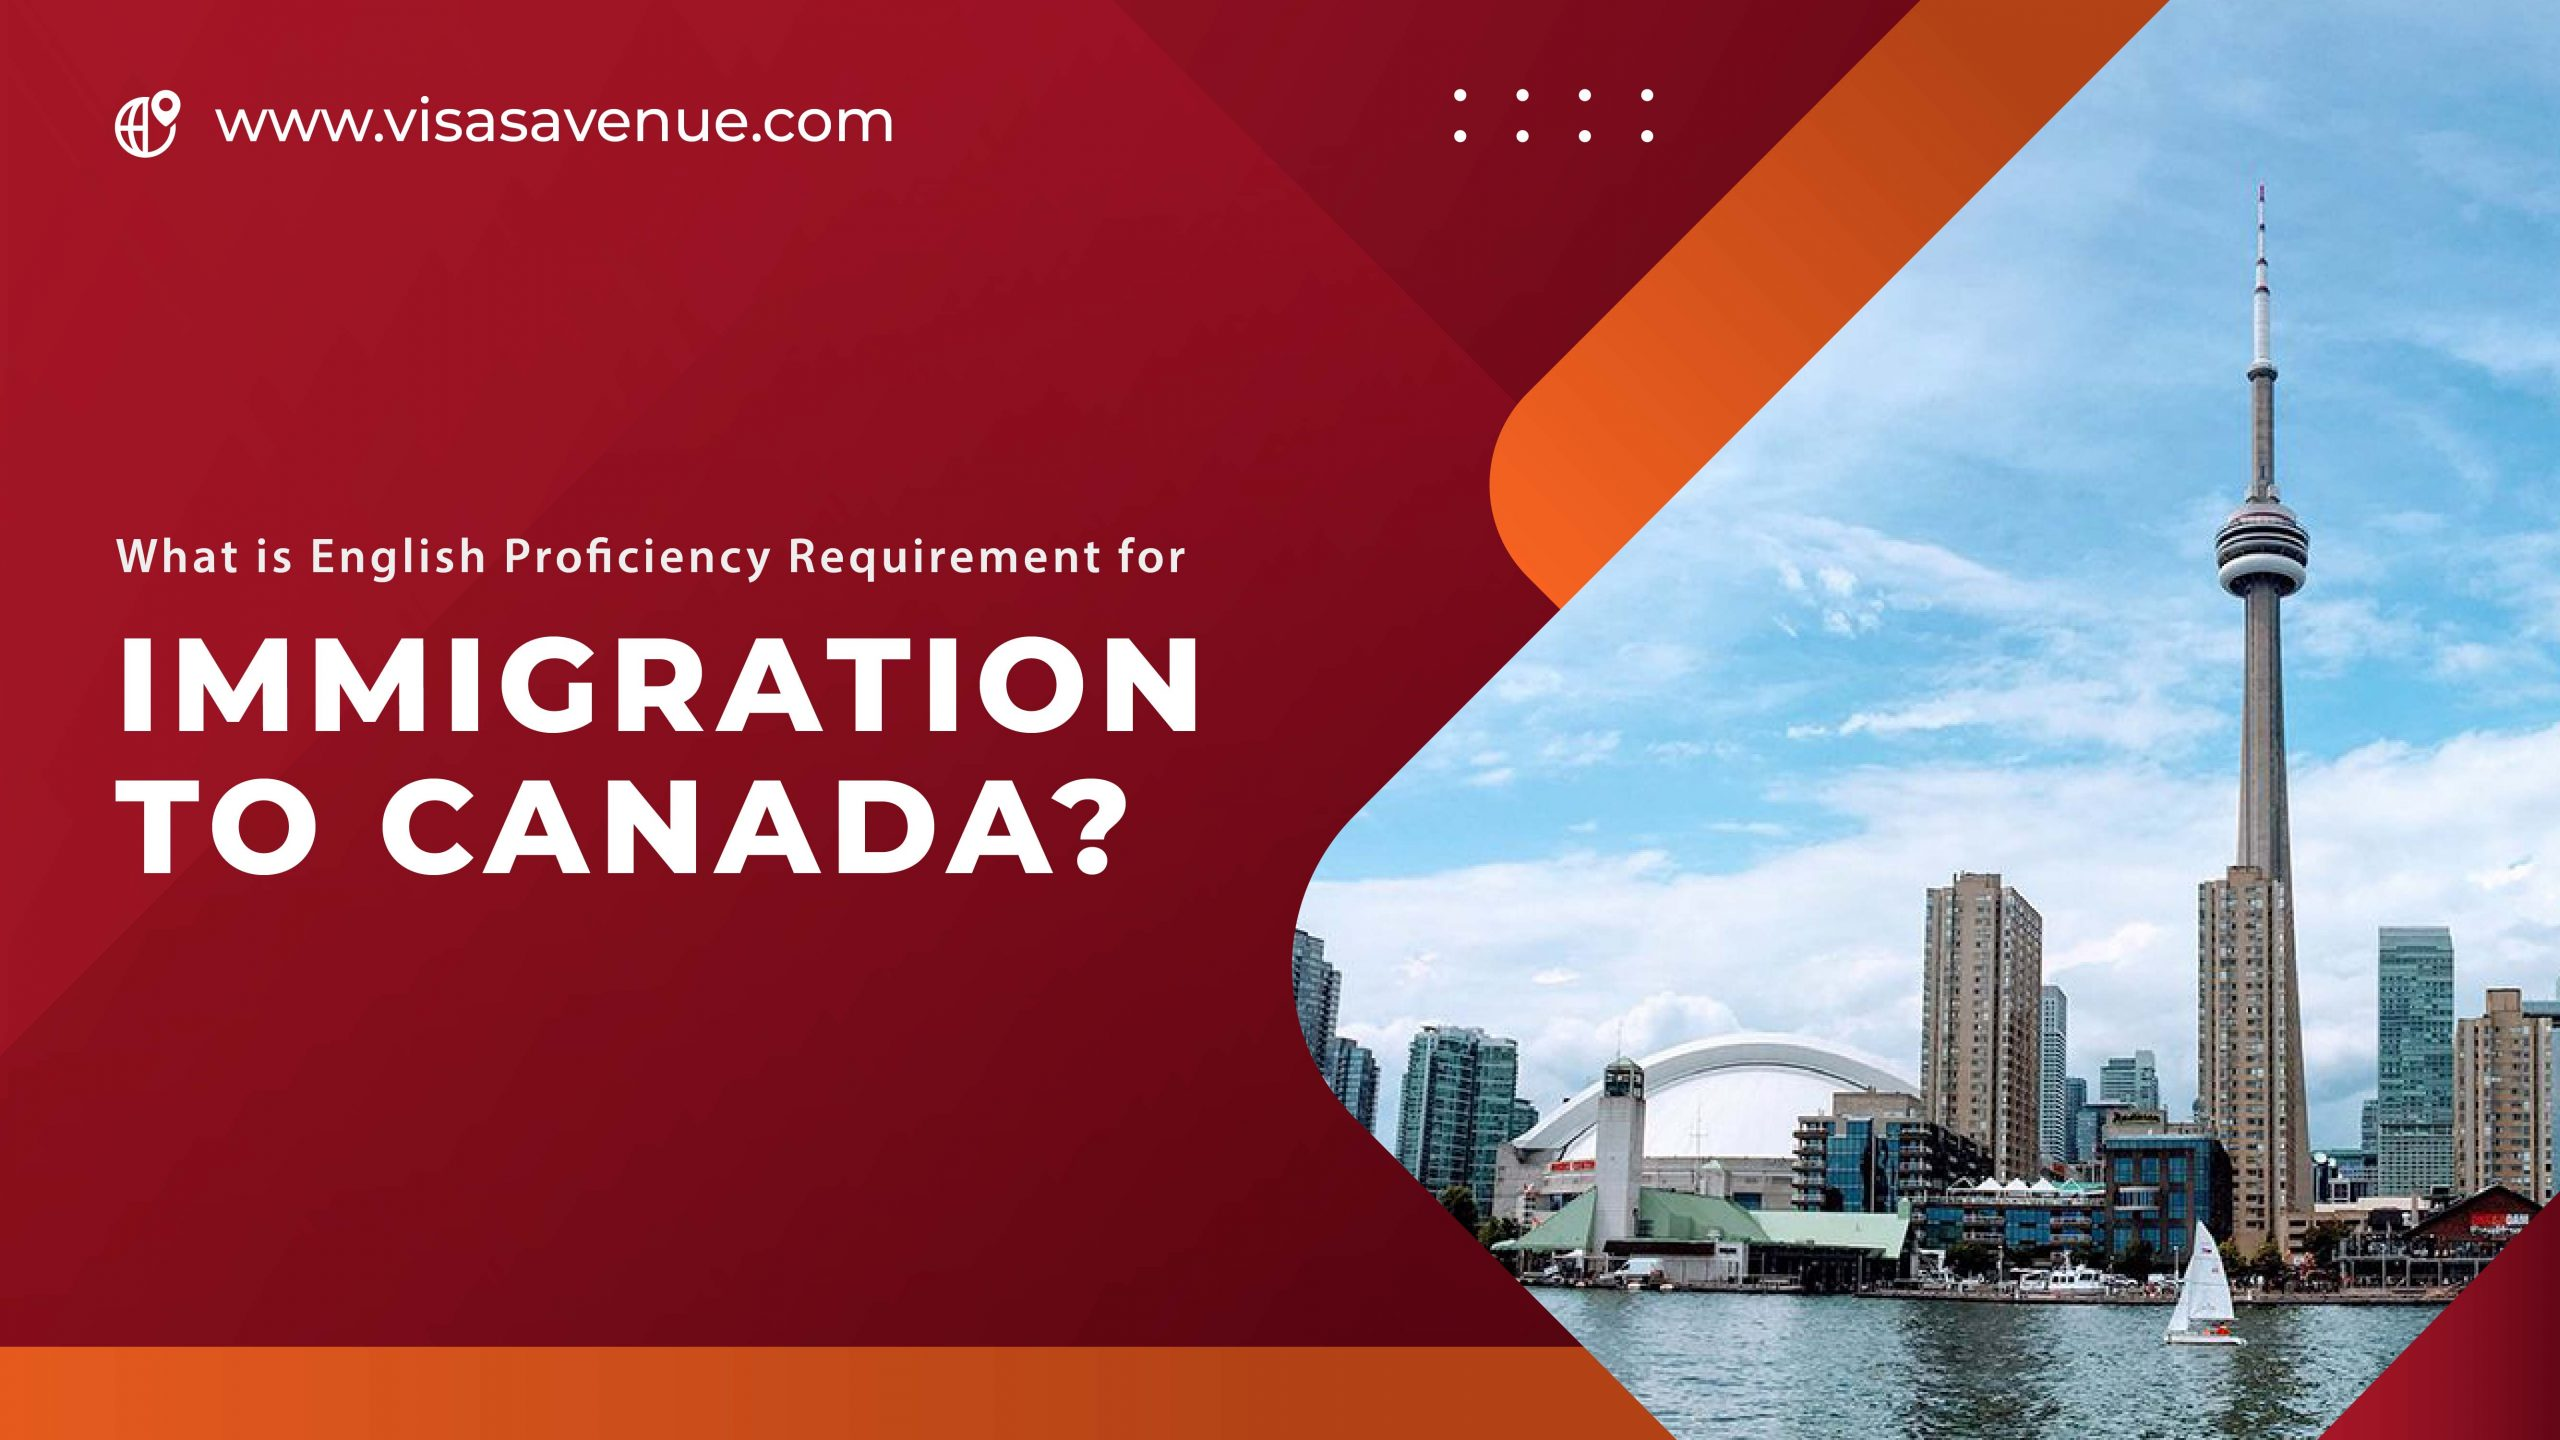 English Proficiency Requirement for immigration to Canada?